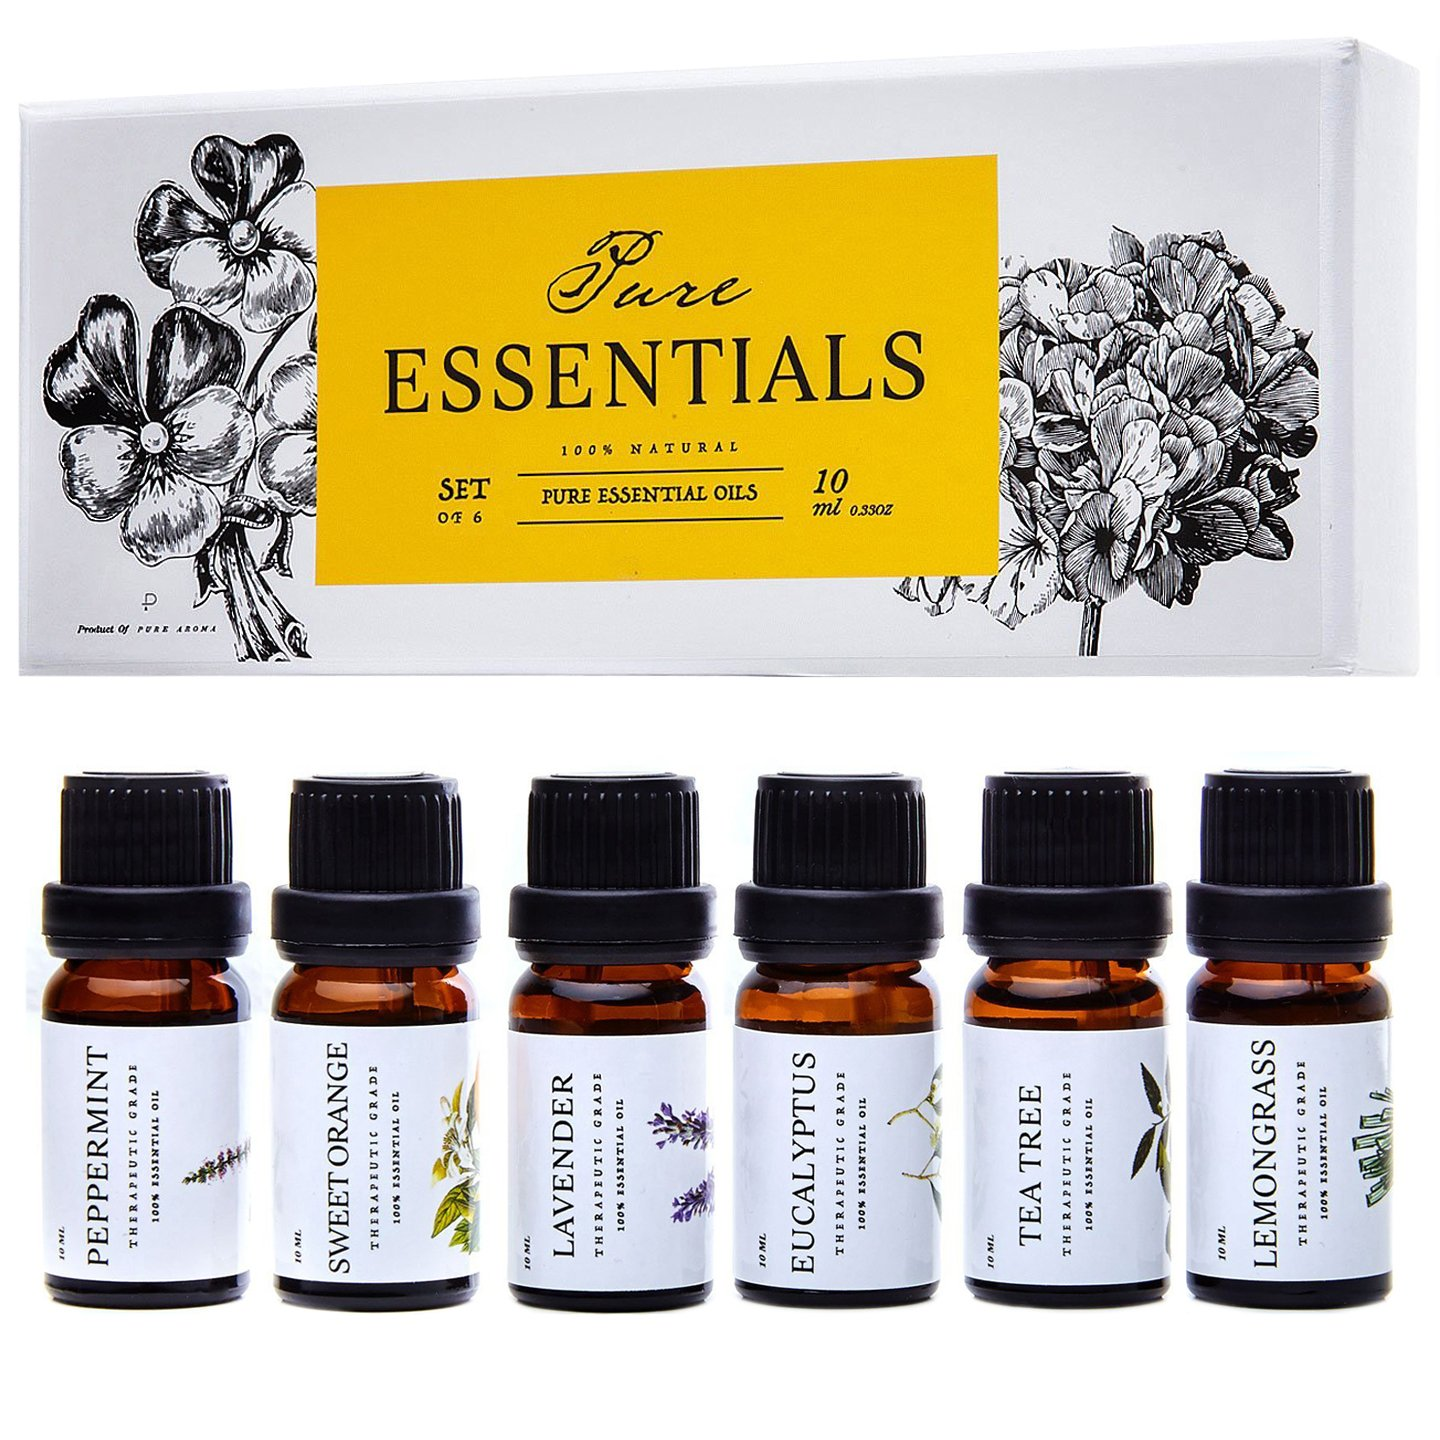 ESSENTIALS Pure Therapeutic Aromatherapy Eucalyptus